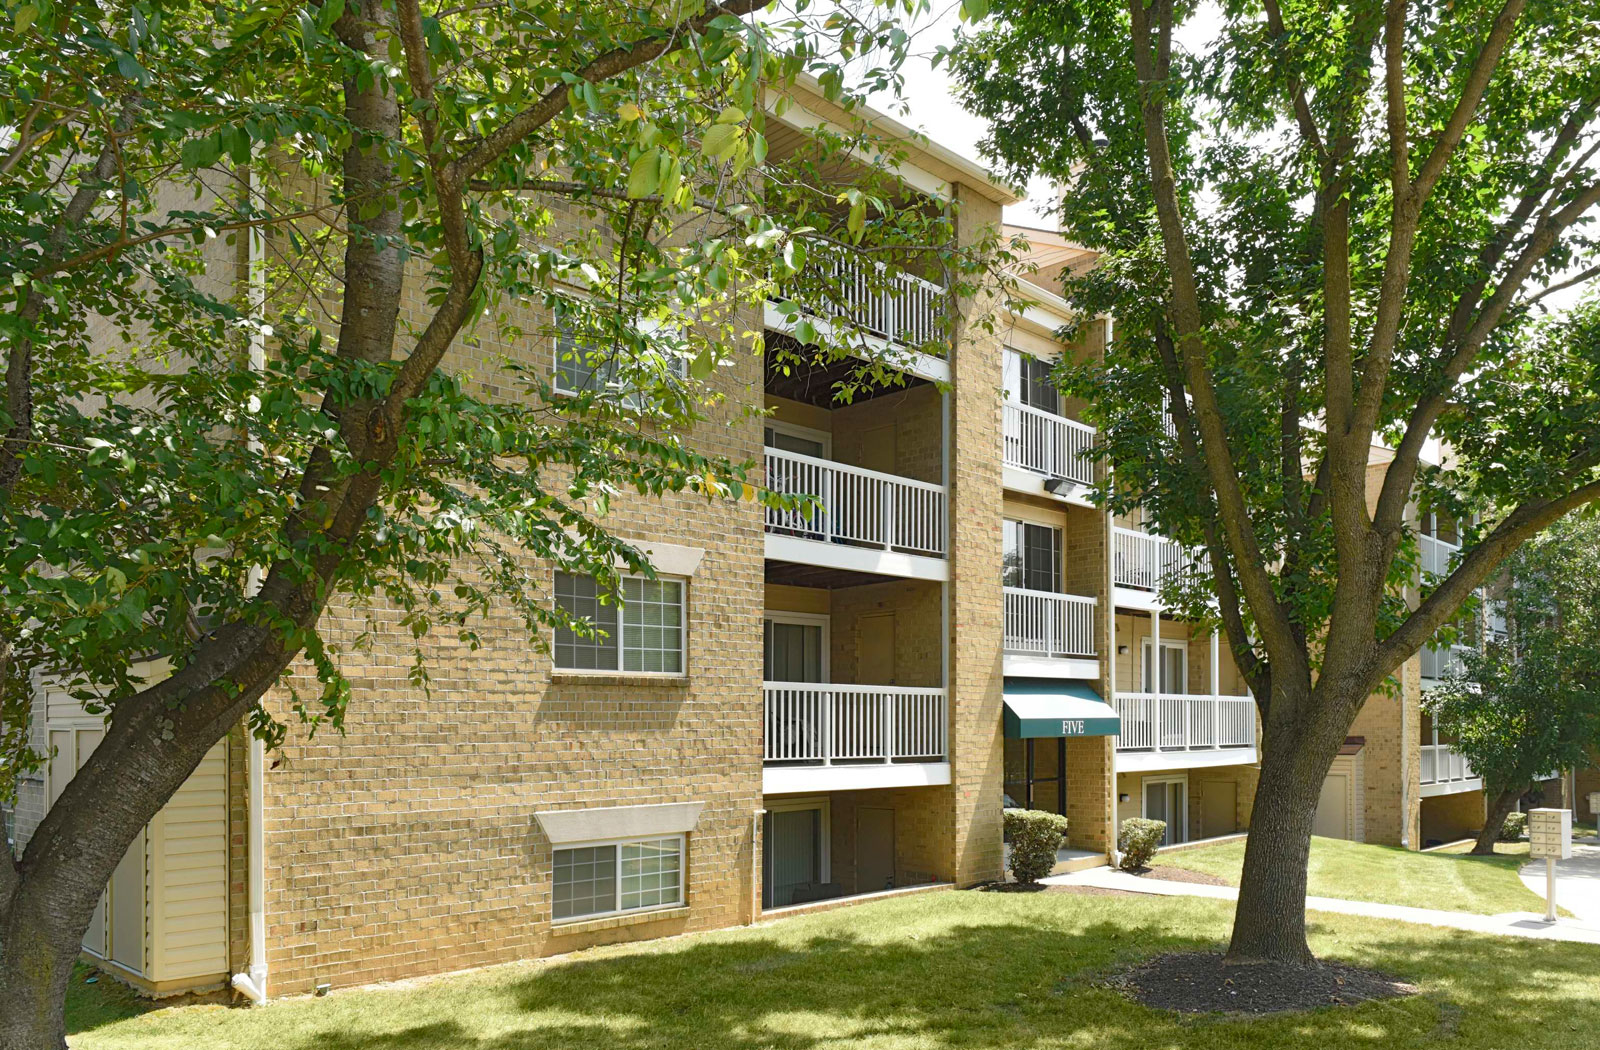 Mcdonogh Township Apartments 6 Homestead Dr Owings Mills